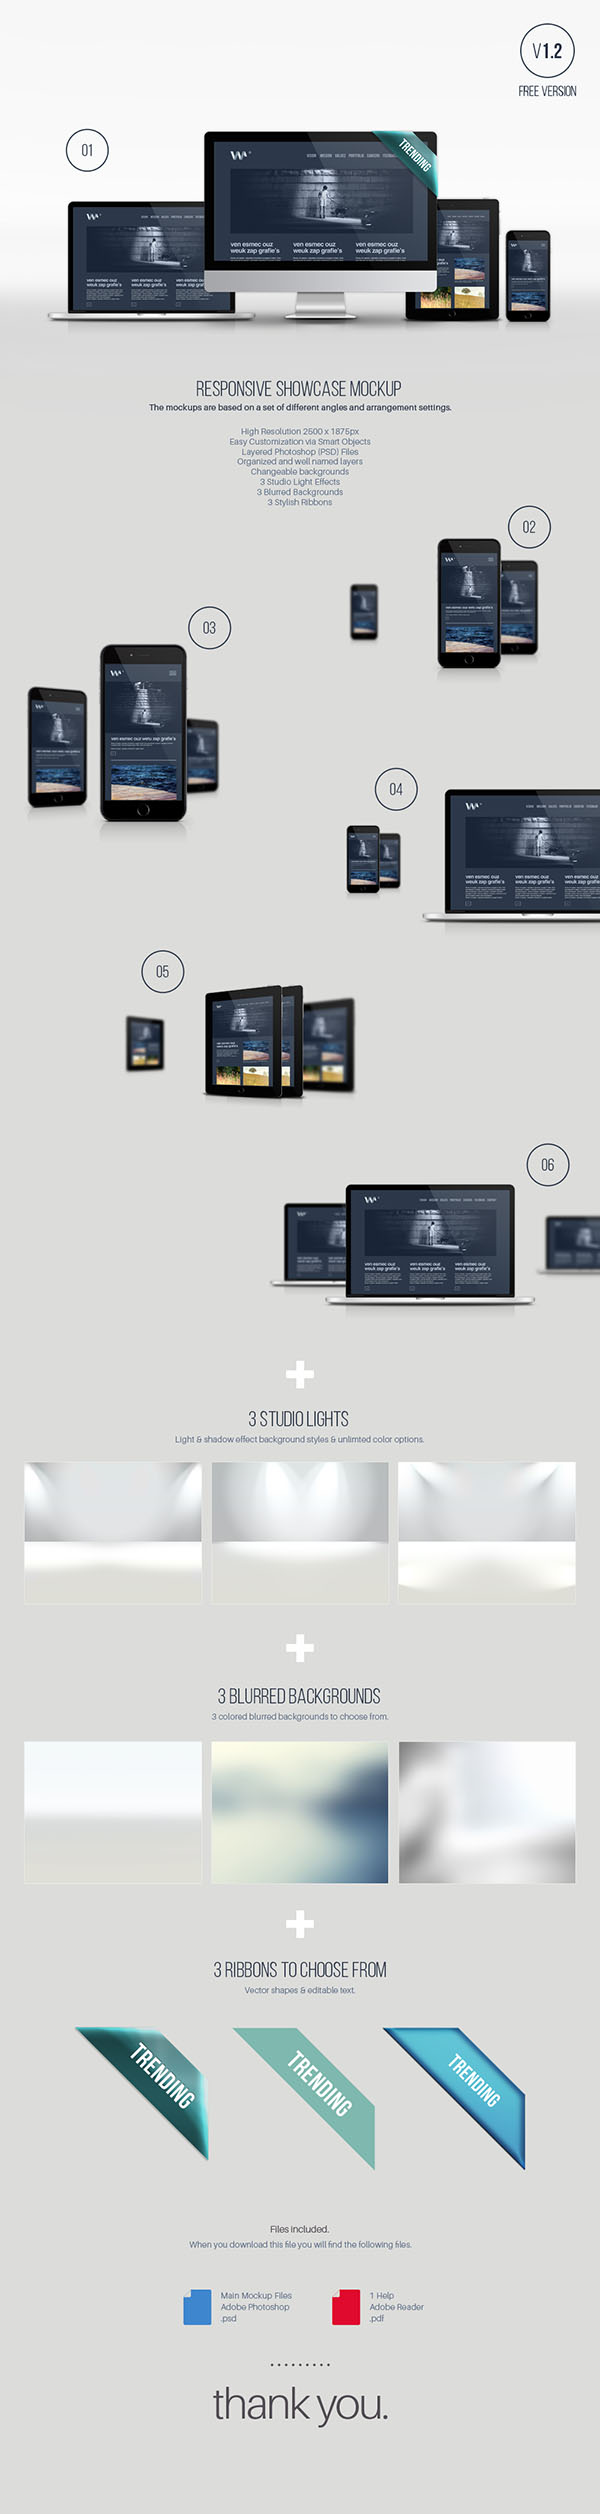 can you clean white leather sofas dark brown sofa living room ideas http://graphichive.net/details.php?id=26031